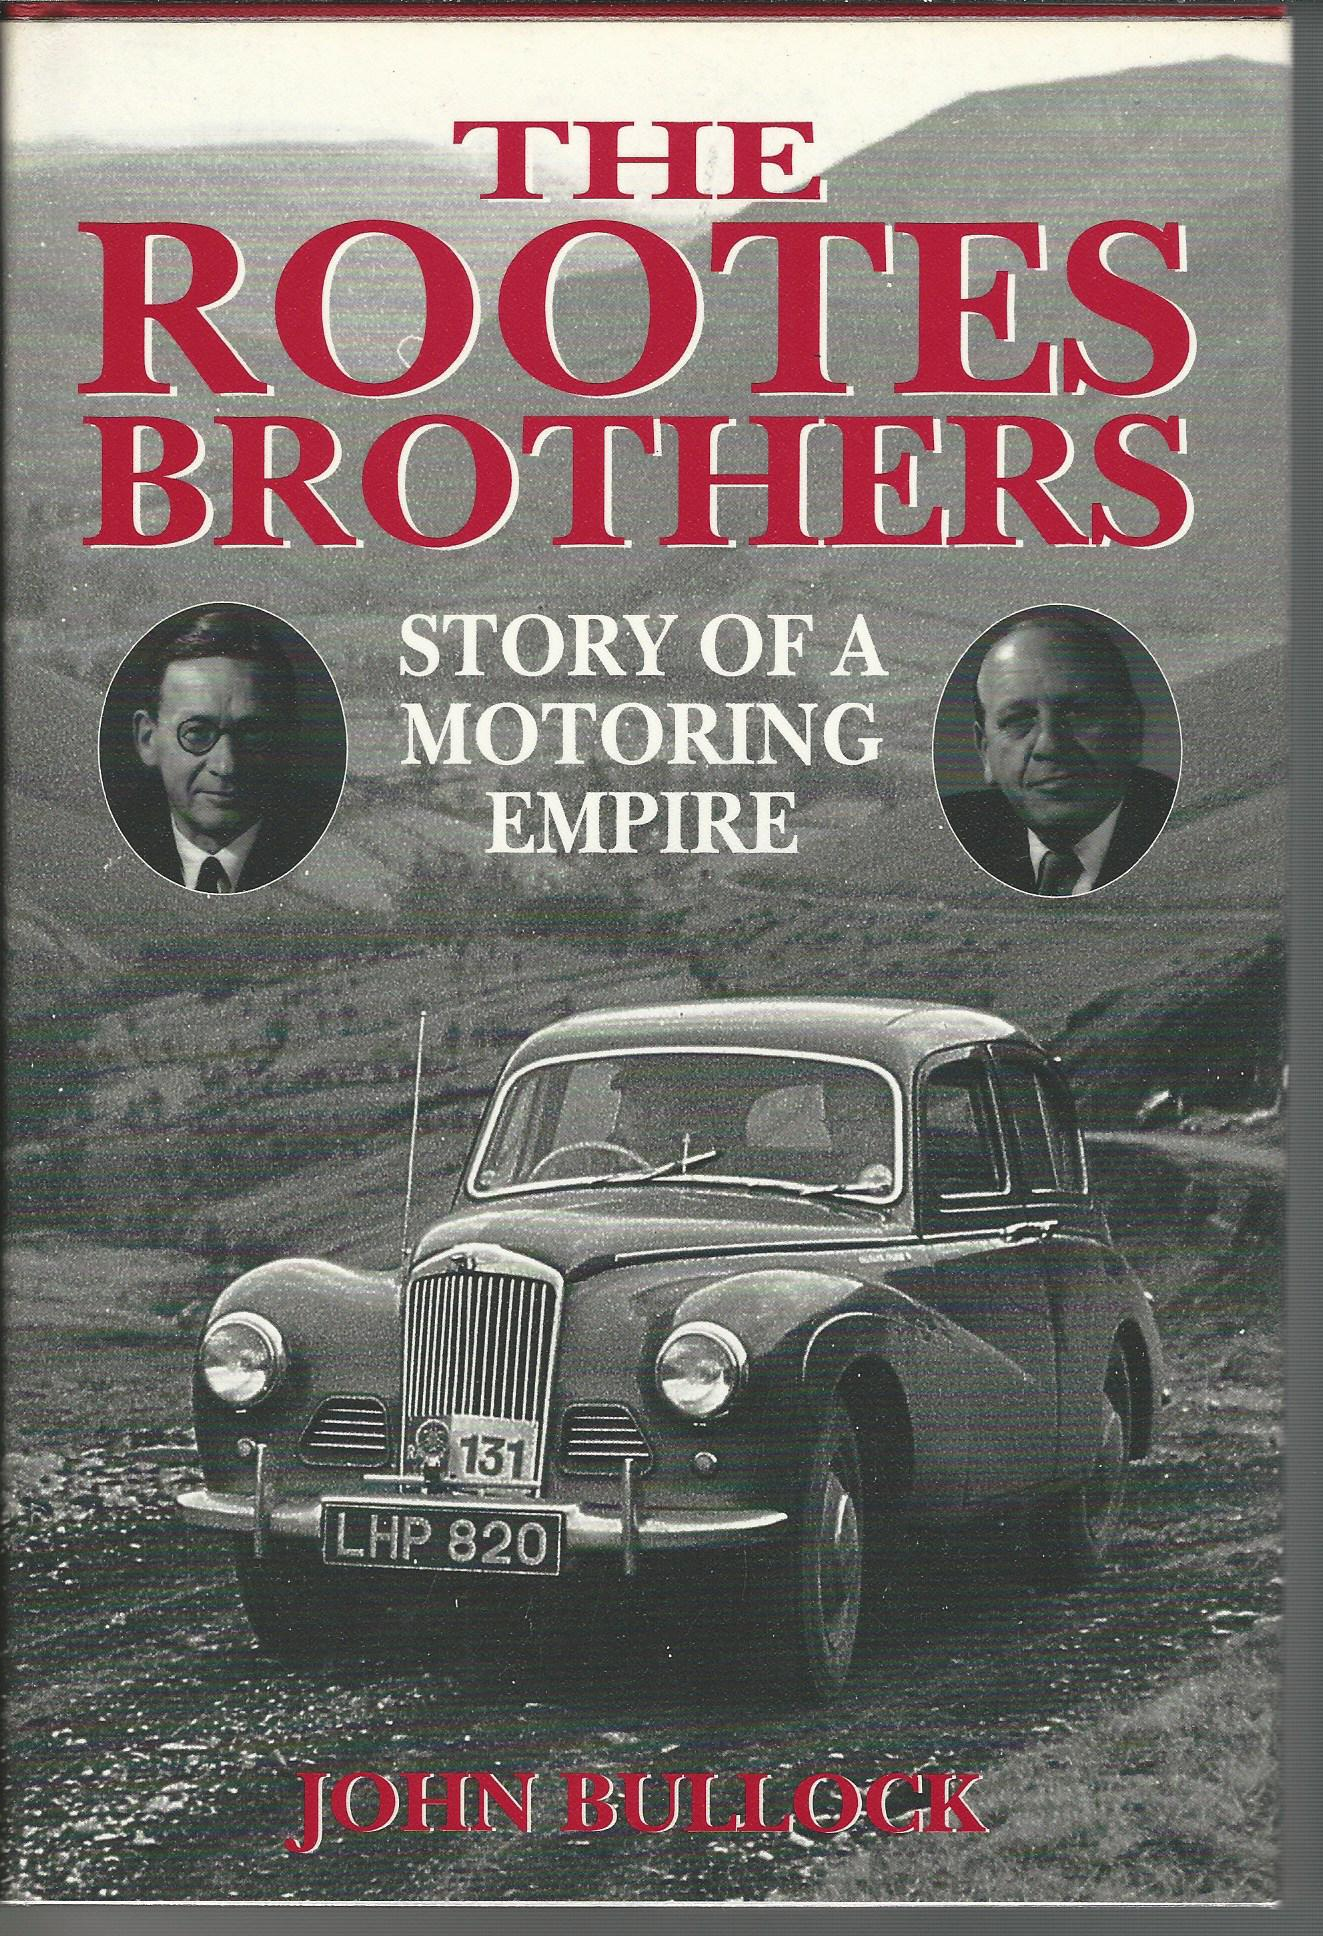 Image for The Rootes Brothers: Story of a Motoring Empire.